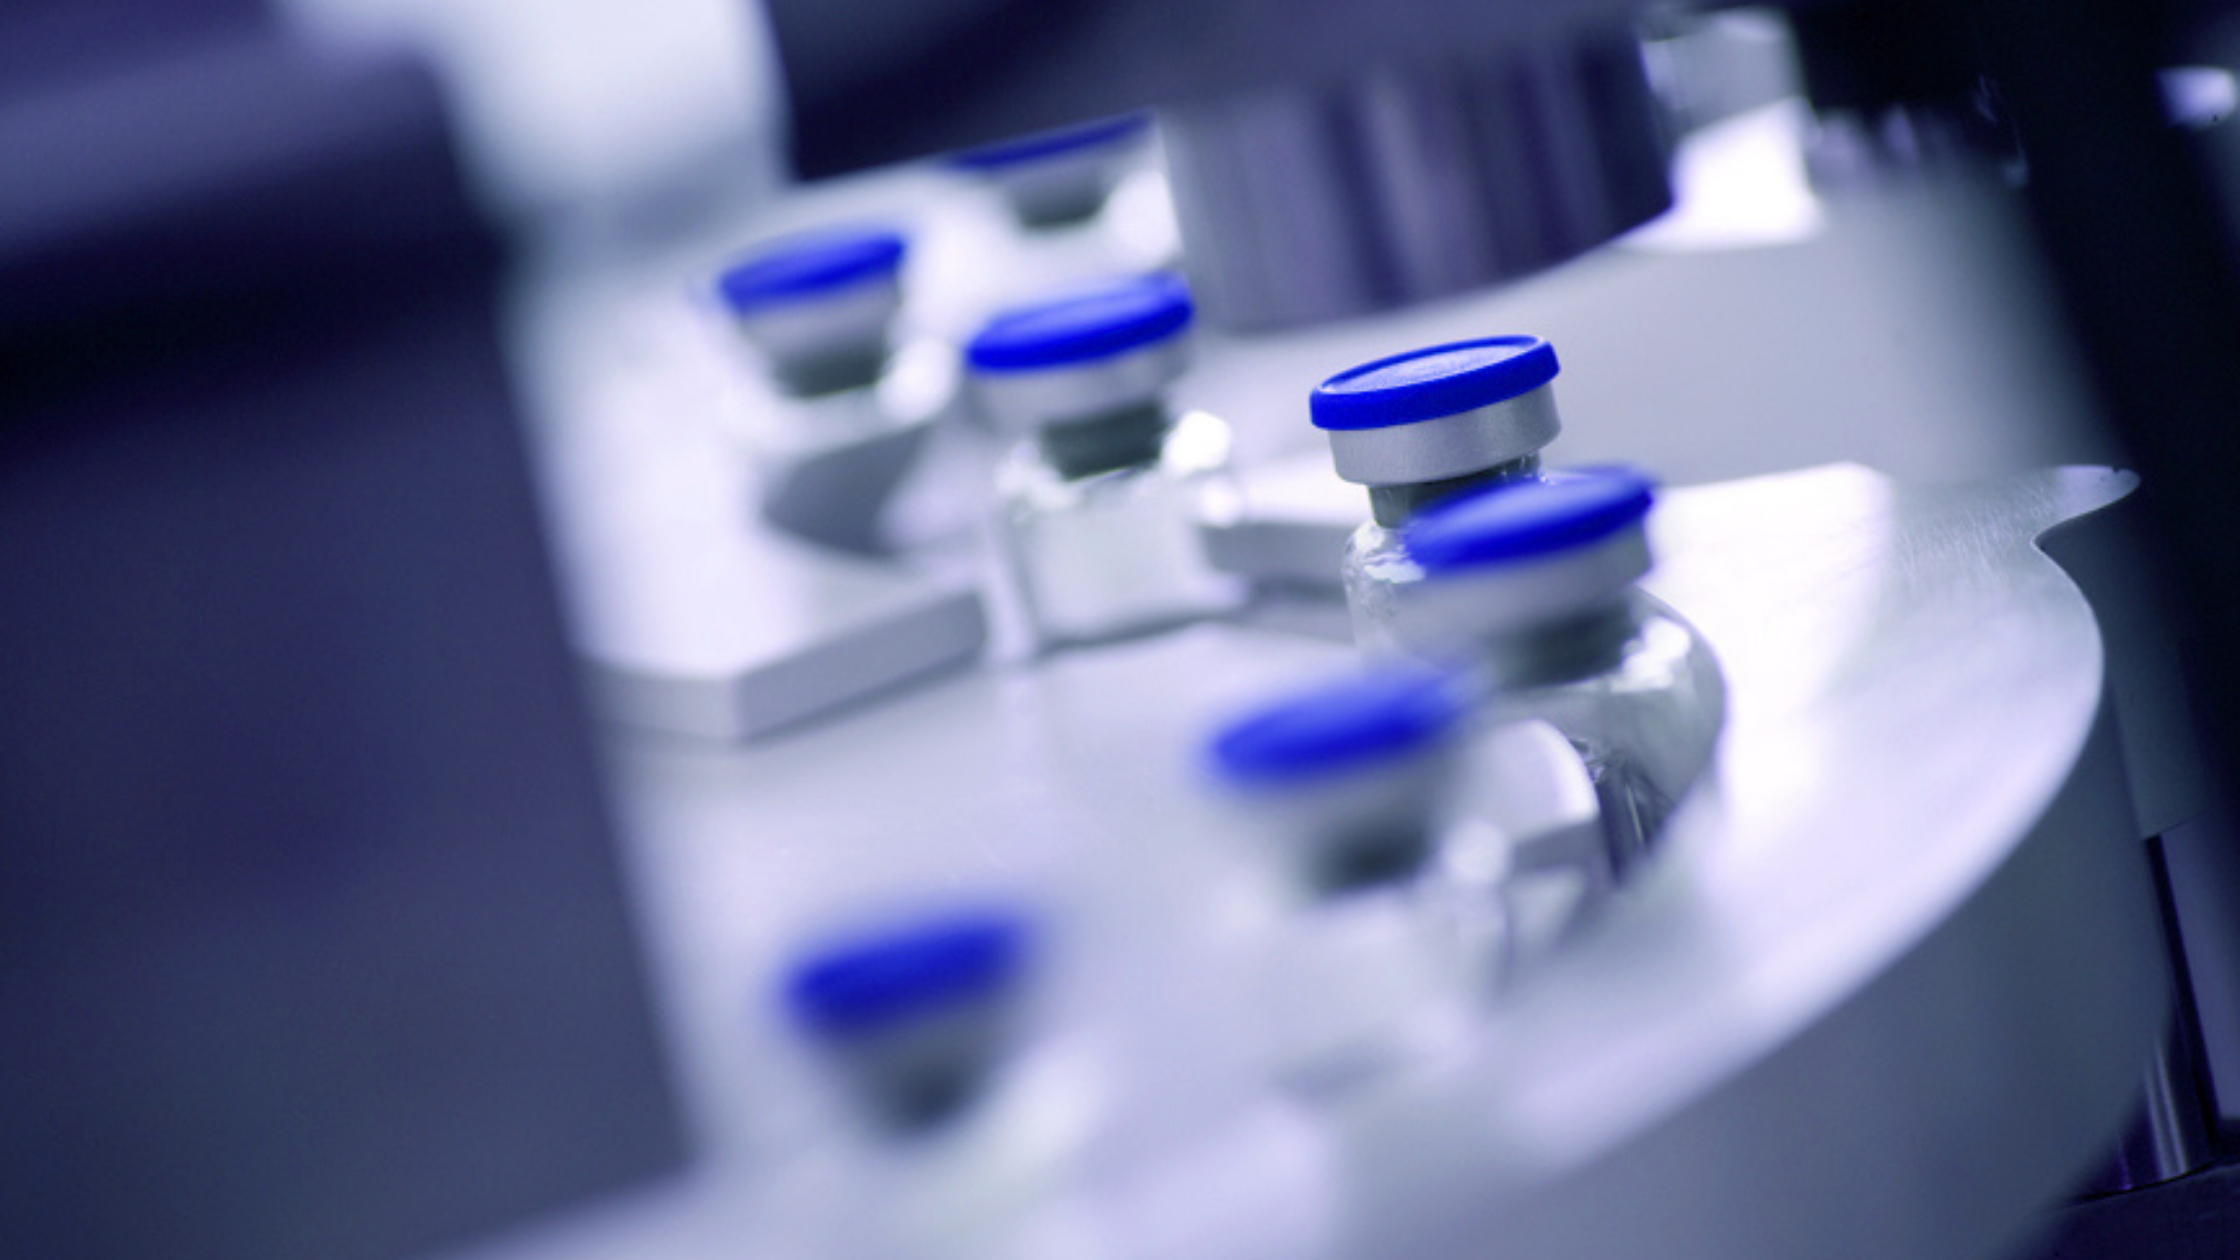 Catalent: A Lesser-Known Investment Opportunity Behind COVID Vaccines